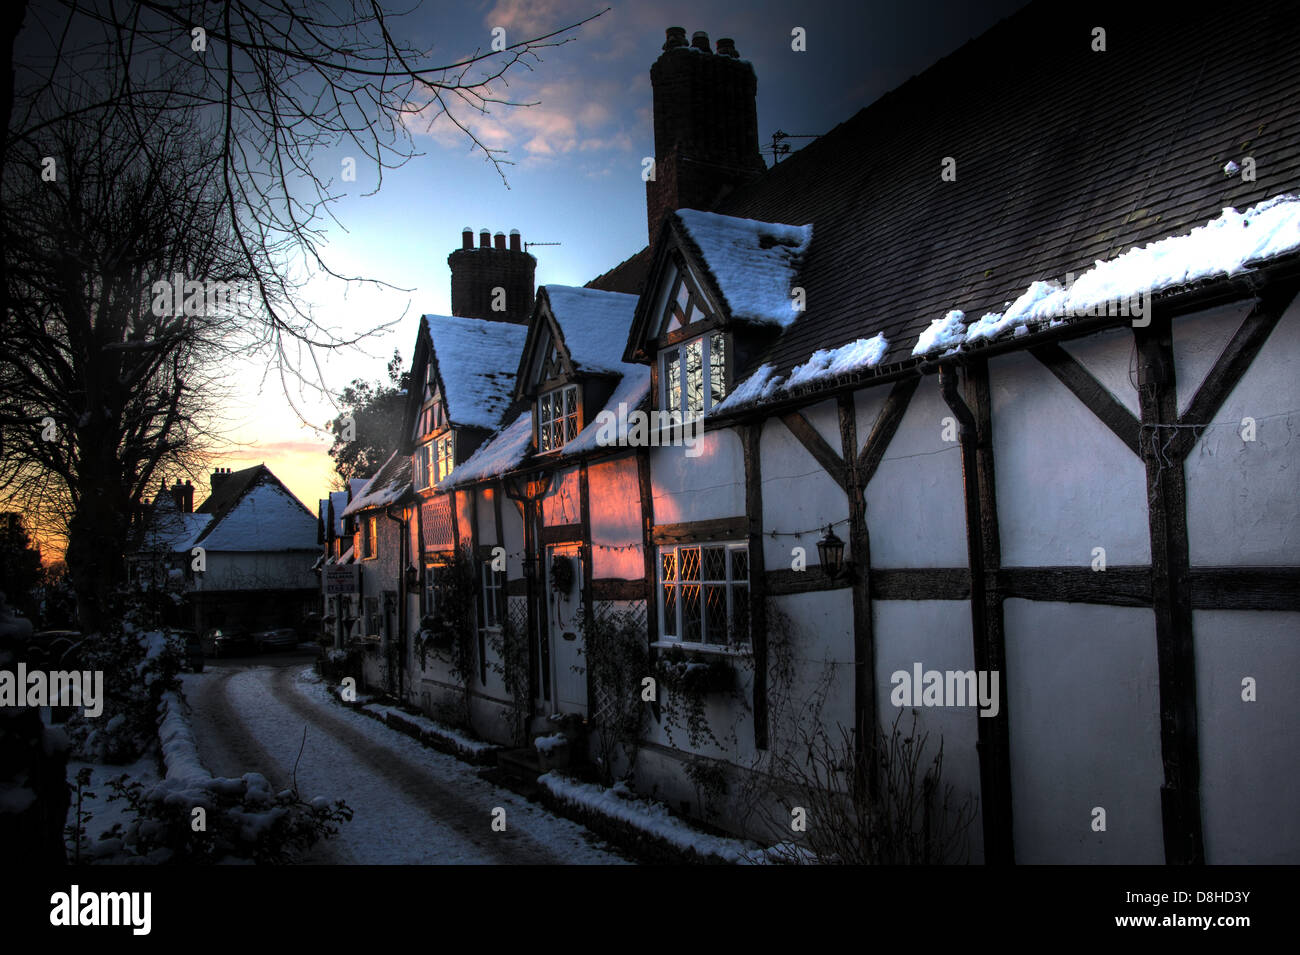 buildings,history,historic,villagescape,village,picturesque,in,Victorian,eyes,sunset,sun,set,rise,sunrise,sky,Grade,I,II,gradeI,gradeII,grade2,grade1,School,lane,ln,CW9,6HF,CW96HF,the,snow,winter 2010,Northwich,Cheshire,England,UK. These are listed cold weather ice blizzard,Gotonysmith,@hotpixuk,hotpixuk,village,villages,thatch,December,cold,icy,Xmas,Christmas,Buy Pictures of,Buy Images Of,English Villages